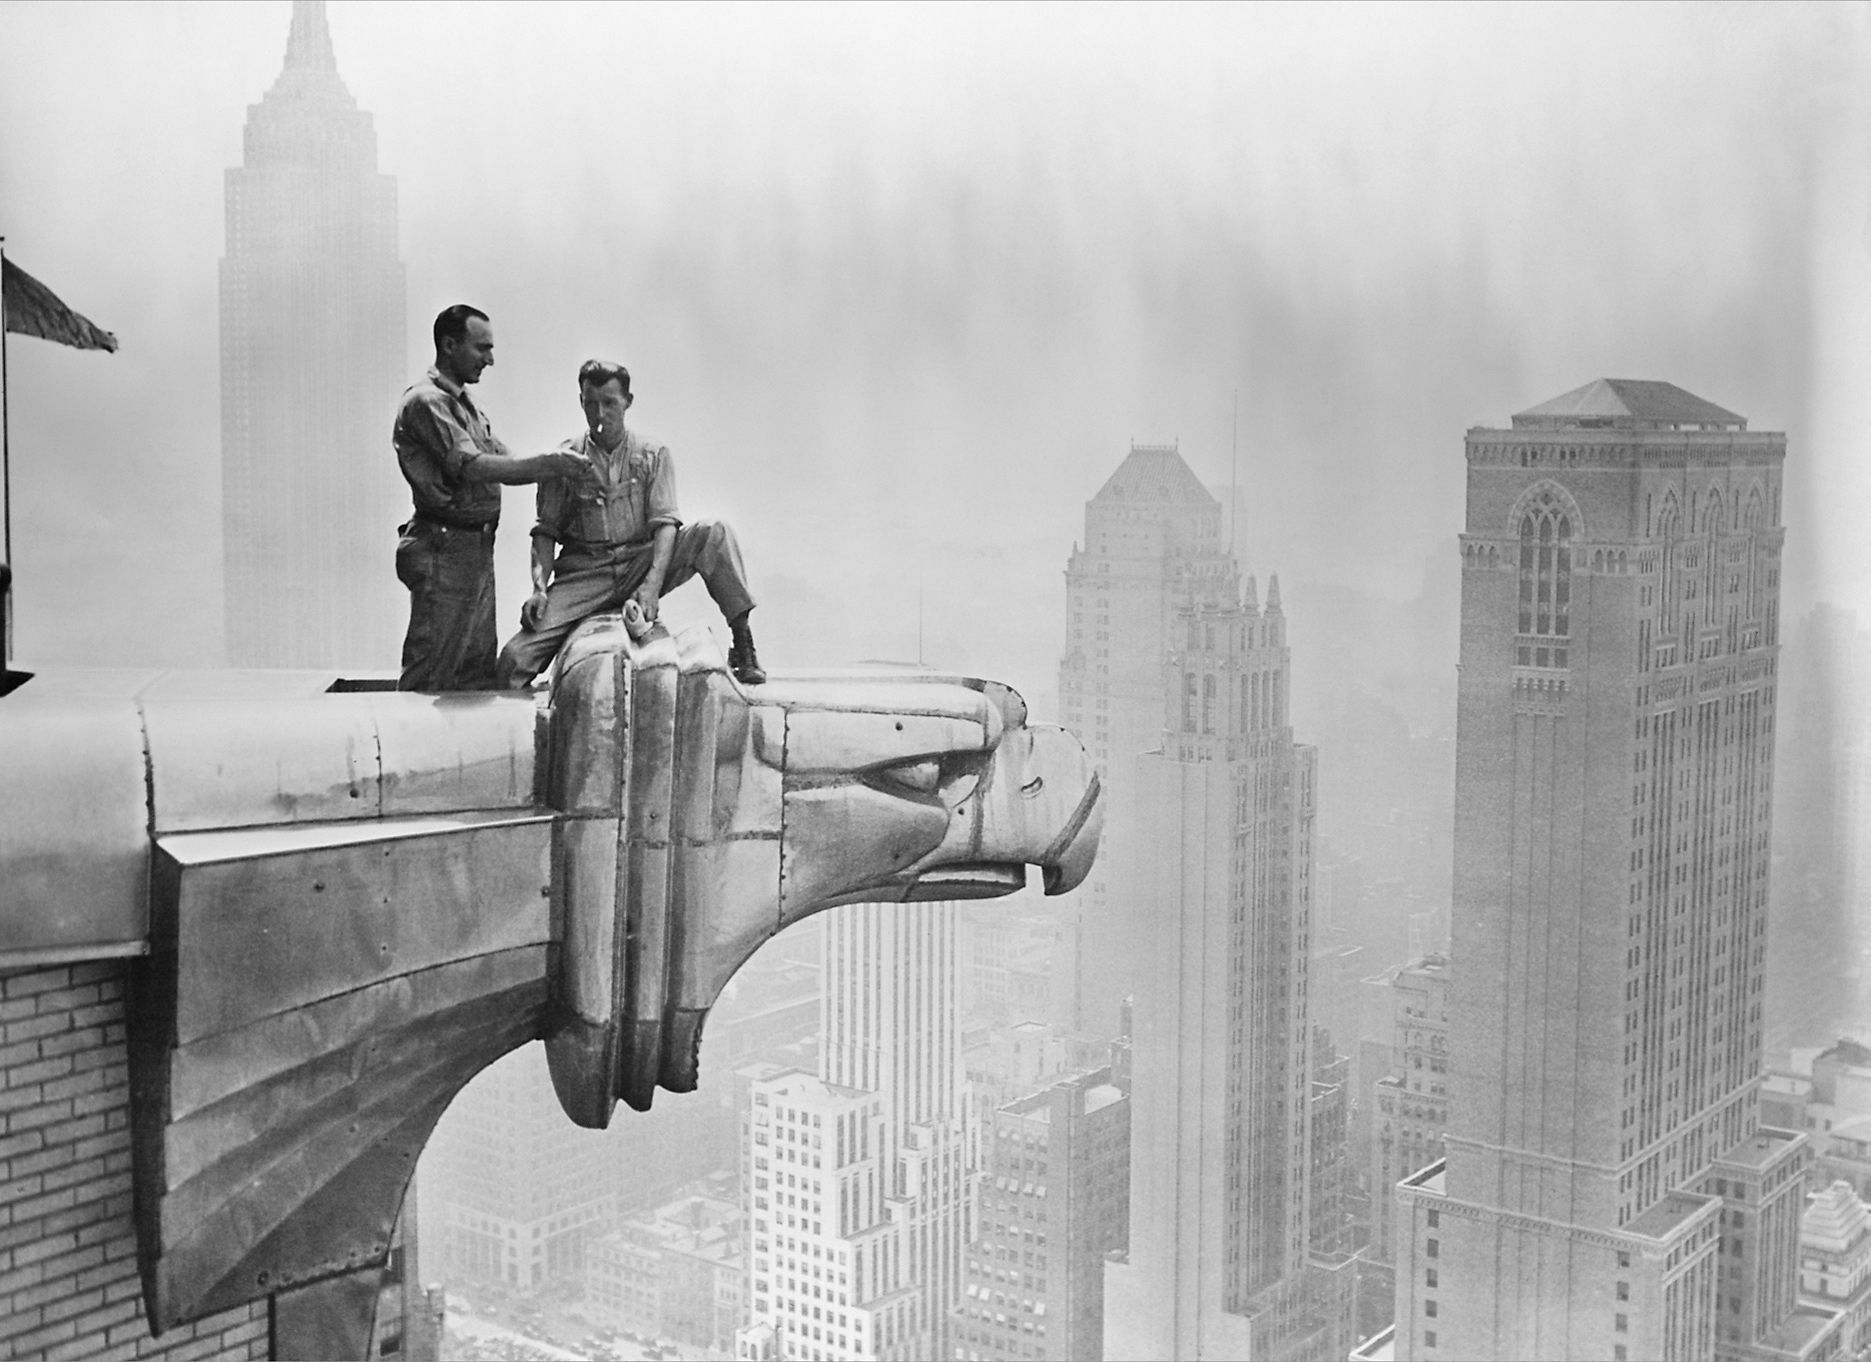 workers_smoking_on_a_chrysler_building_gargoyle_new_york_city_ca_1940_photo_by_tony_strachan.jpg